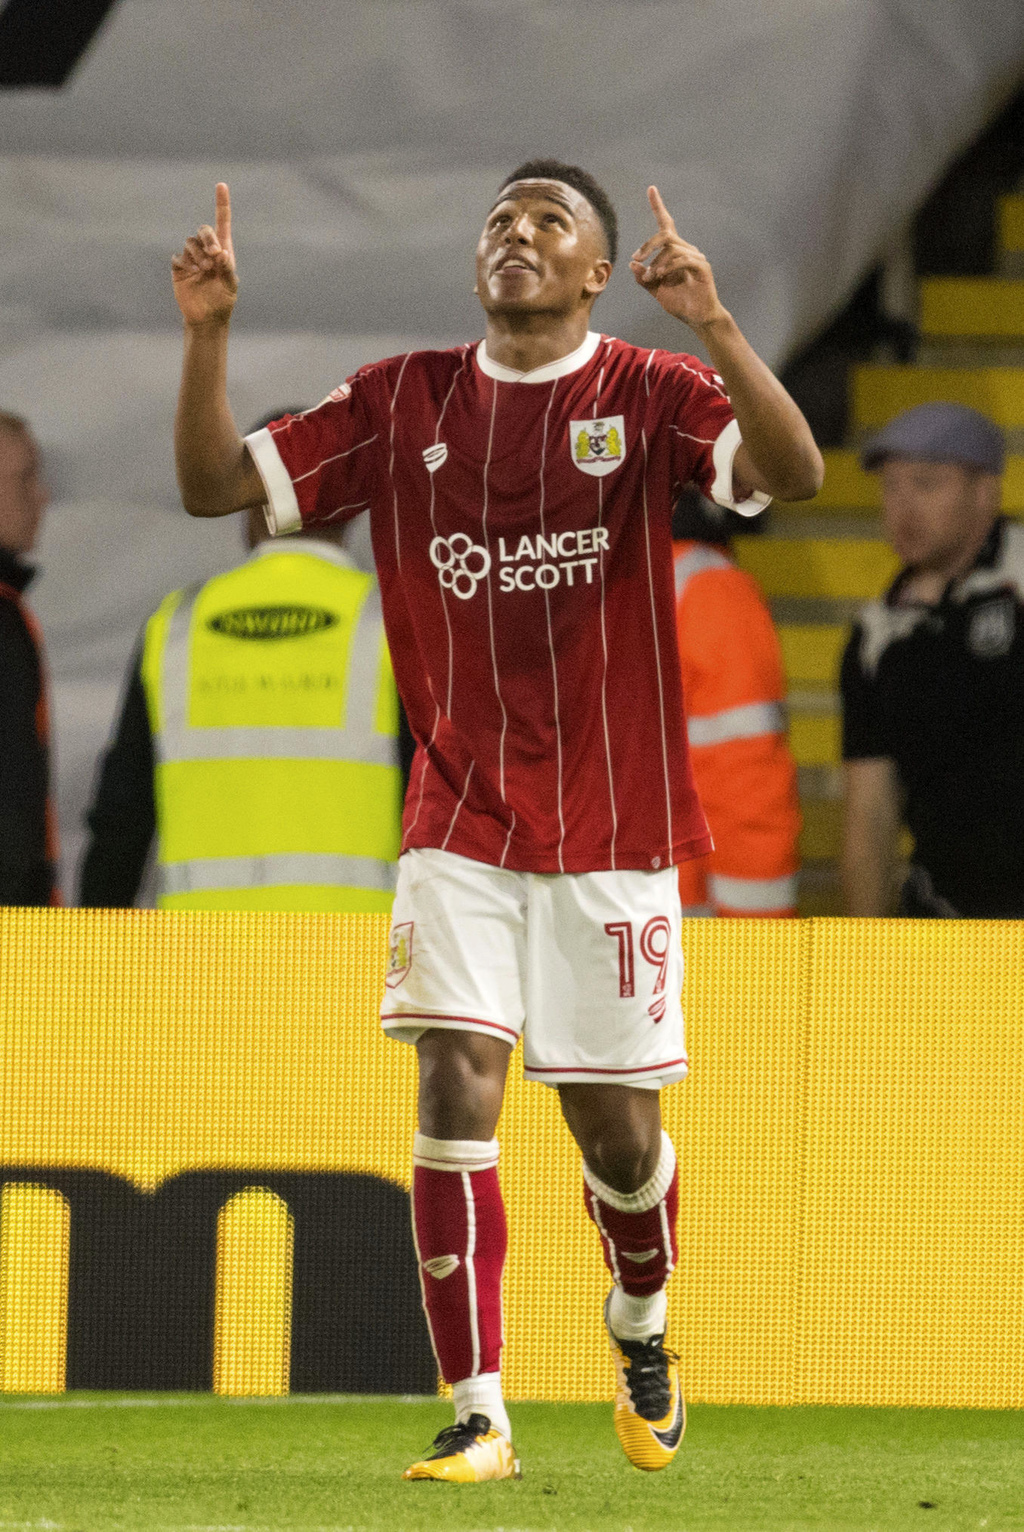 Bristol City's Niclas Eliasson celebrates scoring against Watford during the League Cup second round soccer match at Vicarage Road, Watford, England, ...